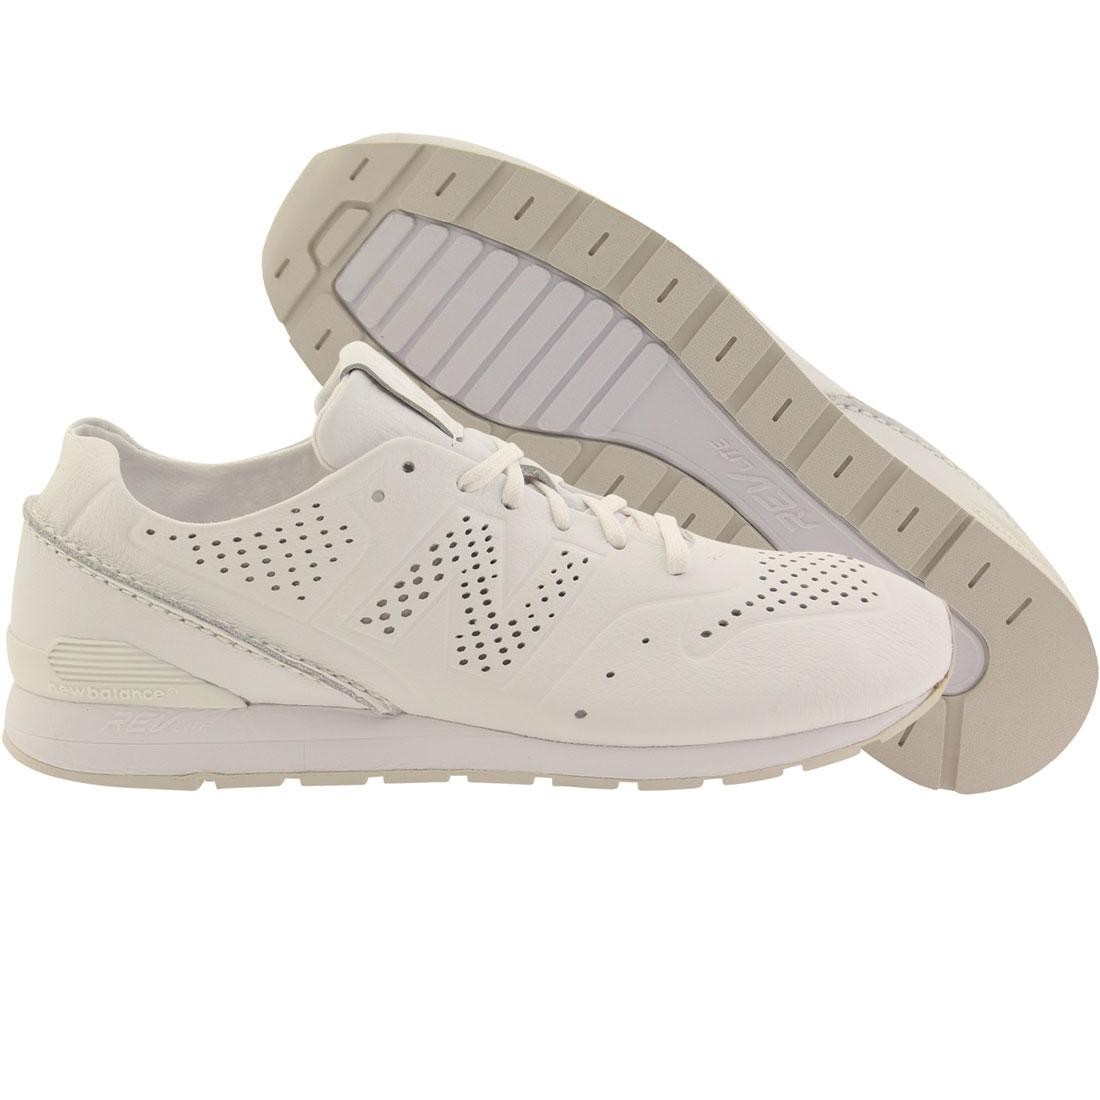 40153051eb25 New Balance Men 696 Deconstructed Leather MRL696DT white